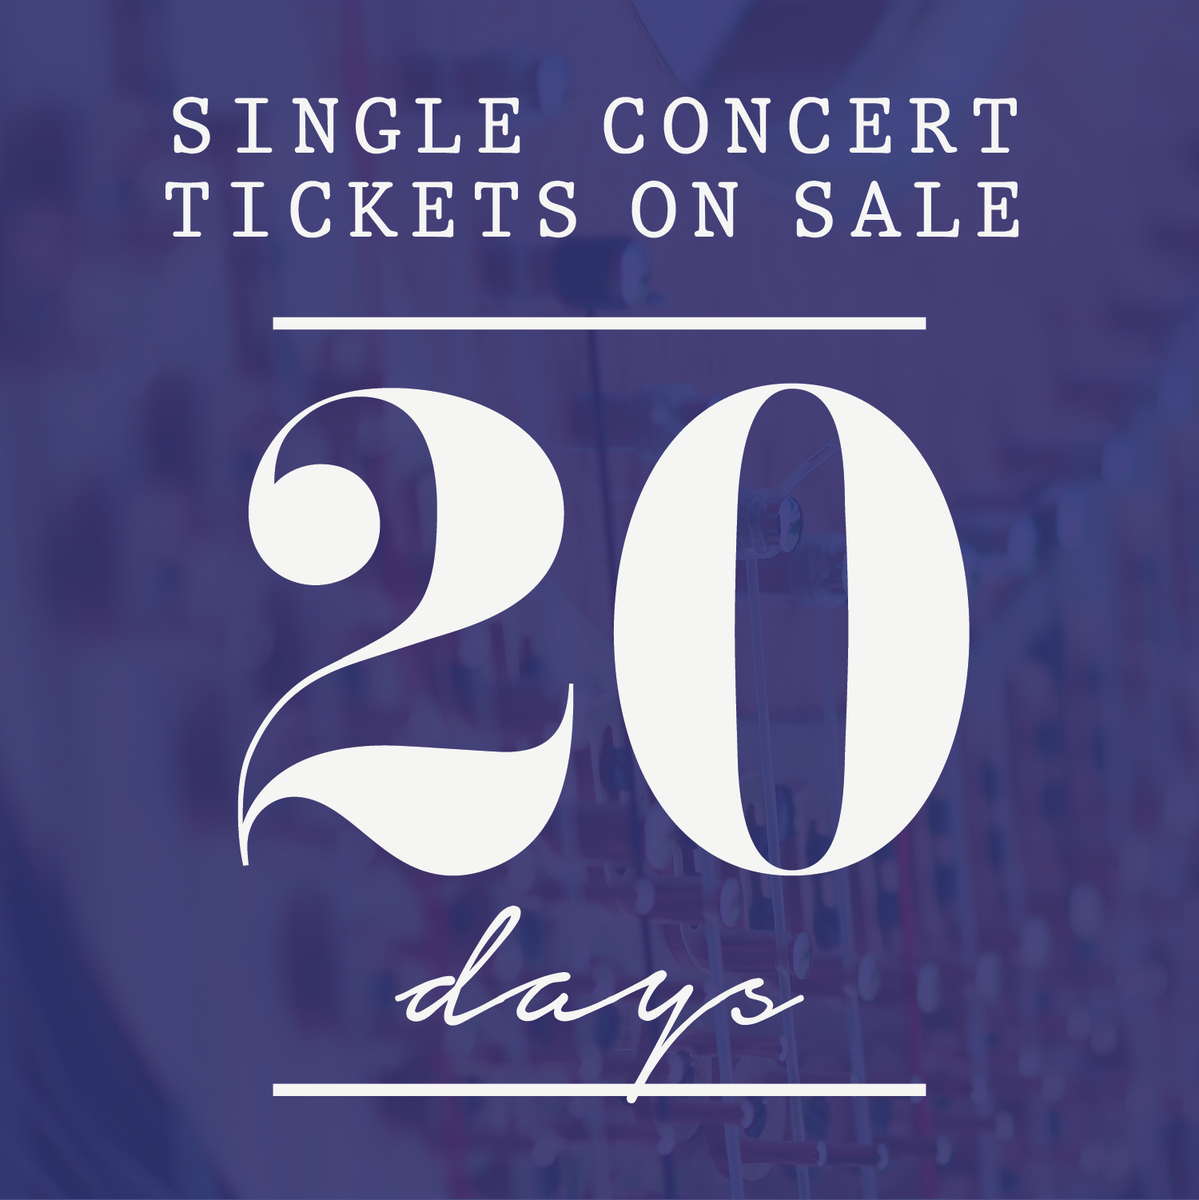 Single-Concert Tickets go on sale SEPTEMBER 4. That means you have 20 days to lock down your favorite season tickets - or 20 days left to wait before you can start planning your ideal date night! #waco #music #classicalmusic<br>http://pic.twitter.com/DcYgd0jfTM